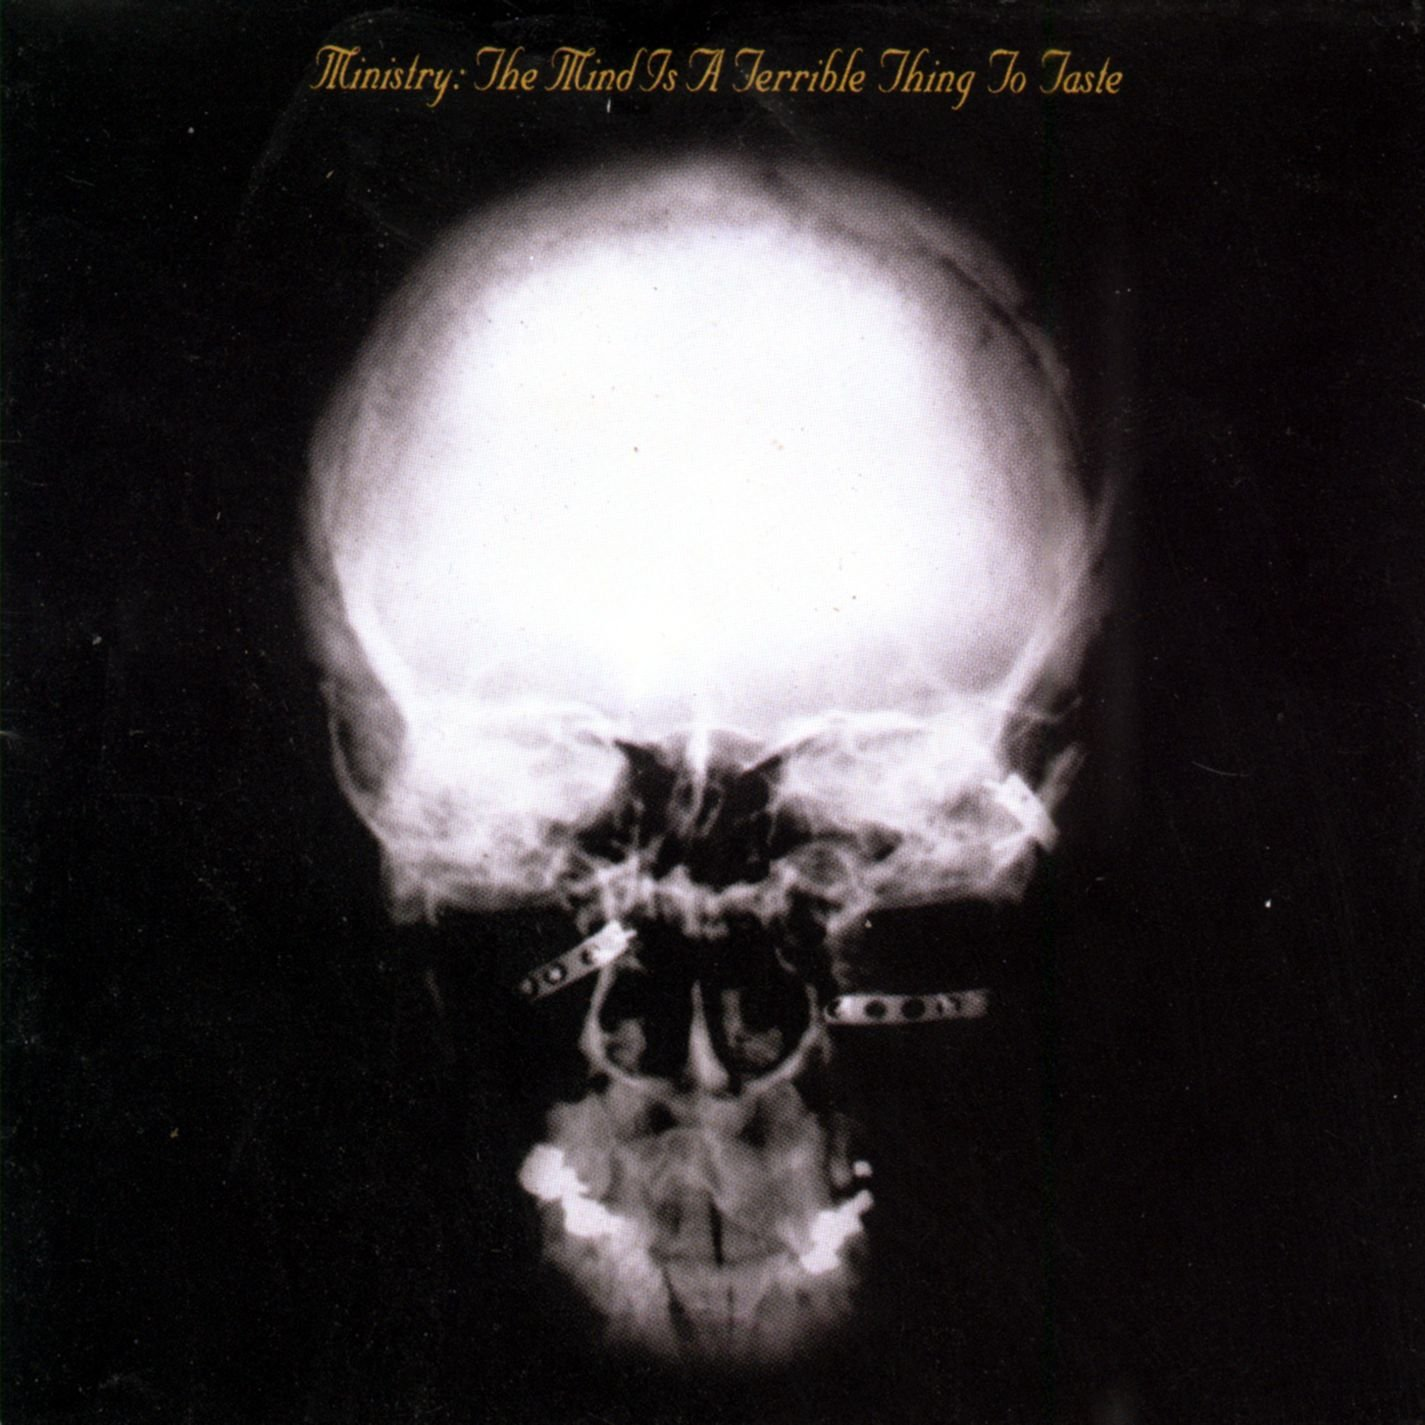 MINISTRY - THE MIND IS A TERRIBLE THING TO WASTE (CD)